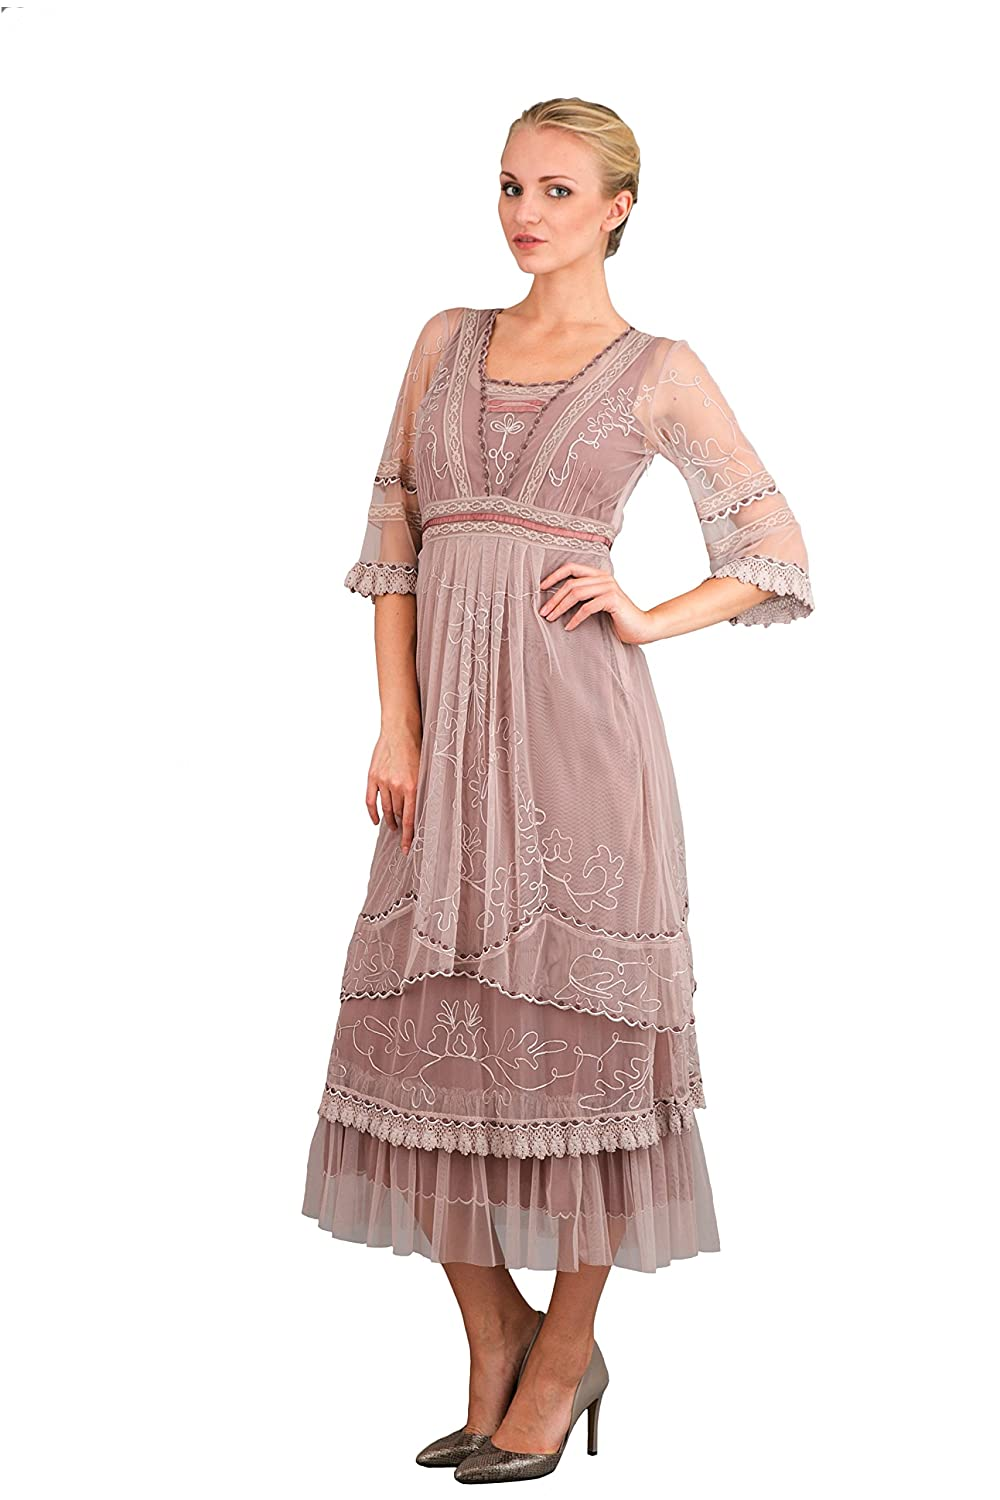 Edwardian Style Dresses Art Deco Gatsby Party Dress in Amethyst $338.00 AT vintagedancer.com